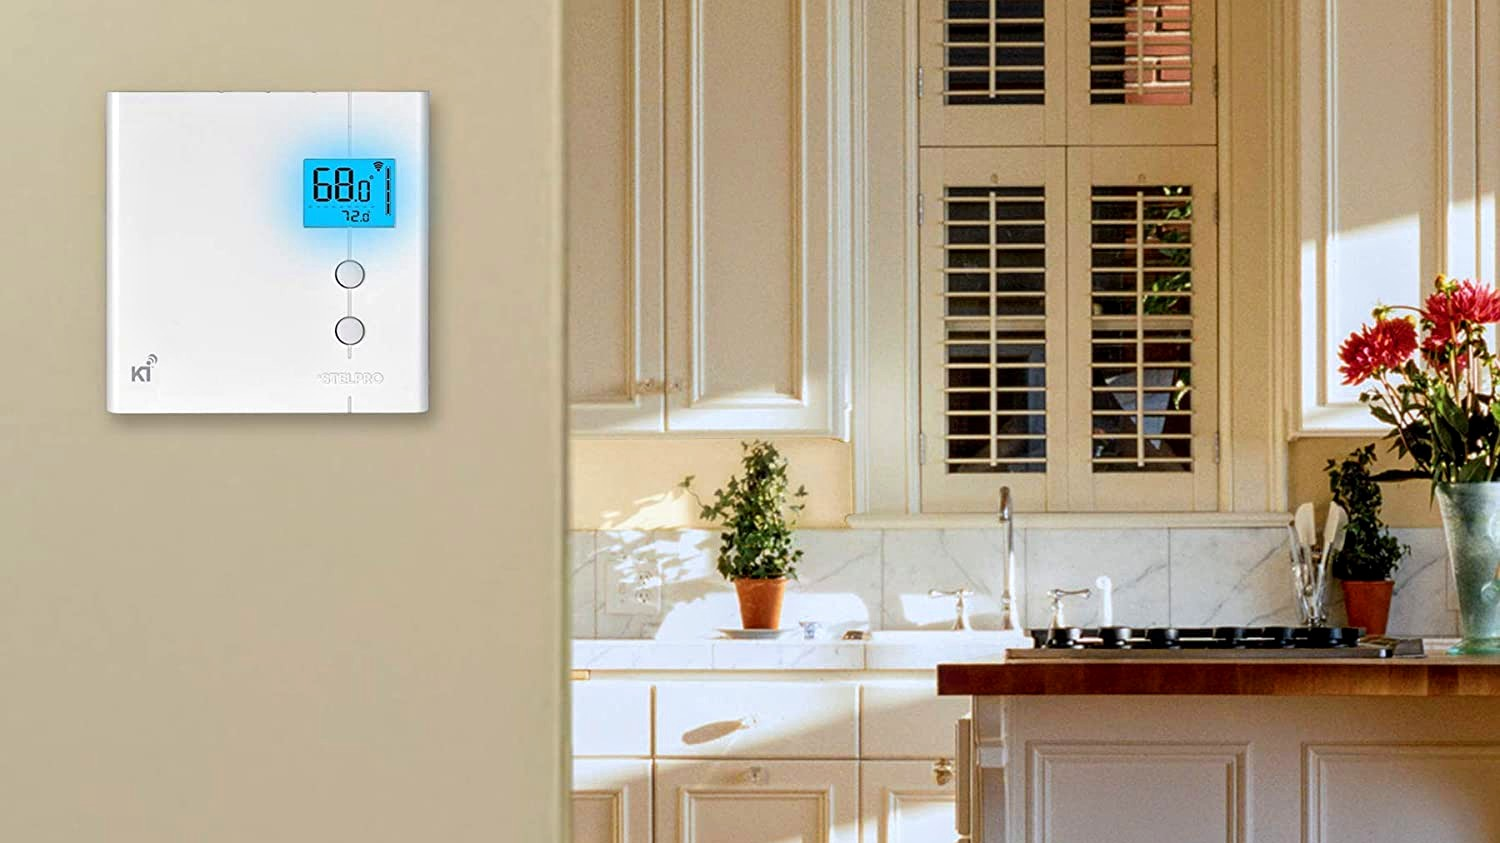 Smart thermostats for baseboard heaters can reduce noise as well as costs